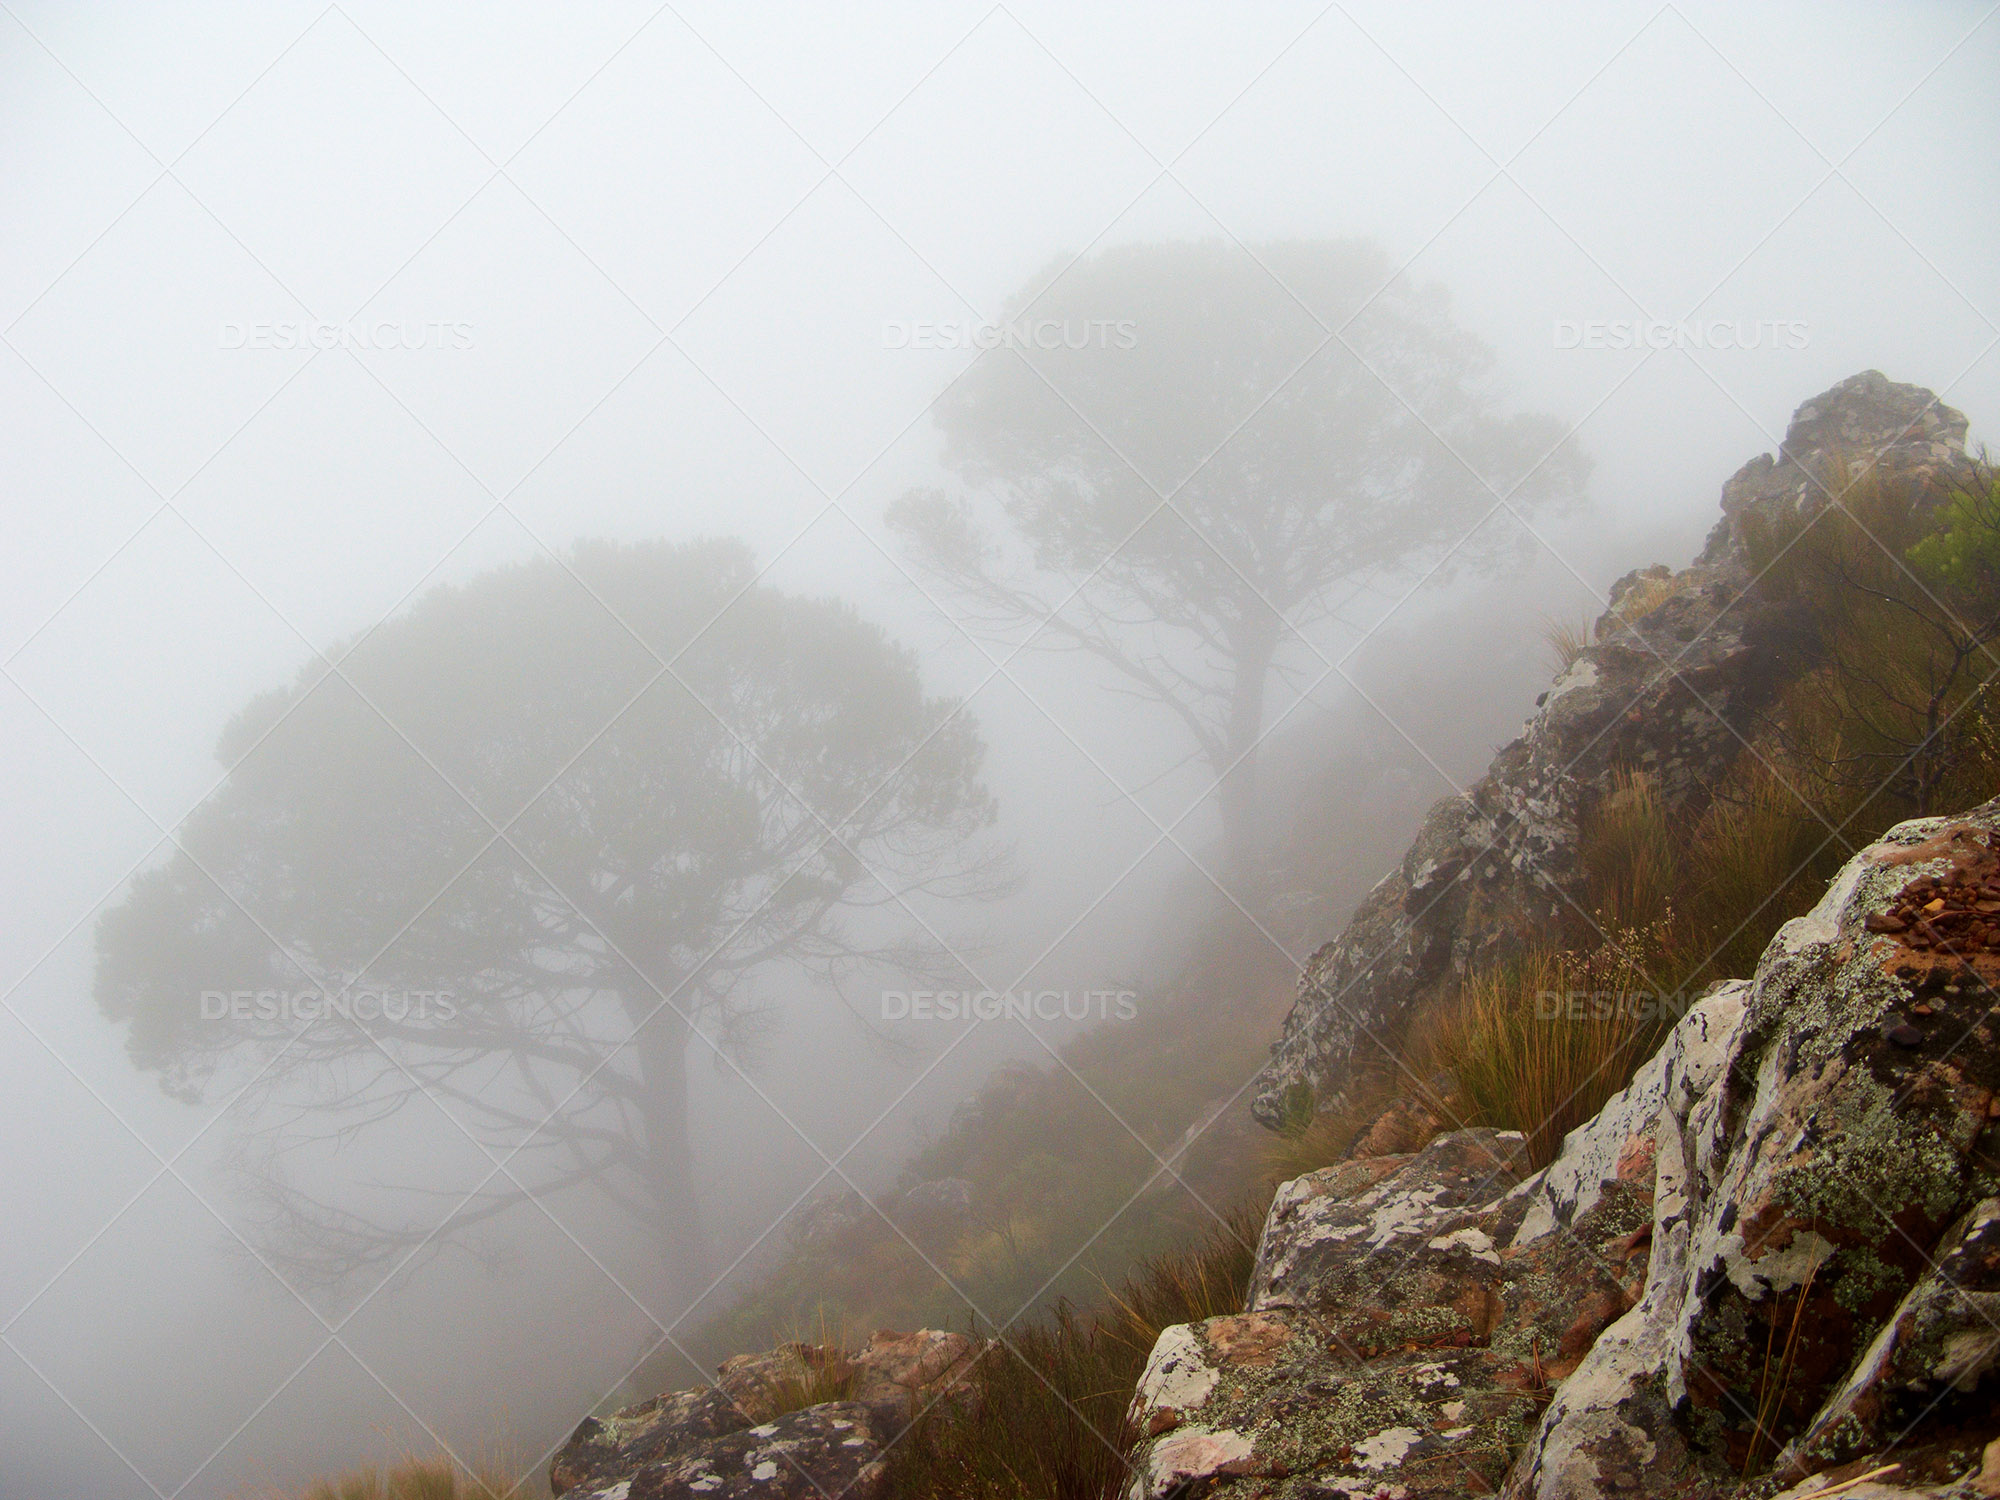 Rockface With Trees Covered By Mist In Background